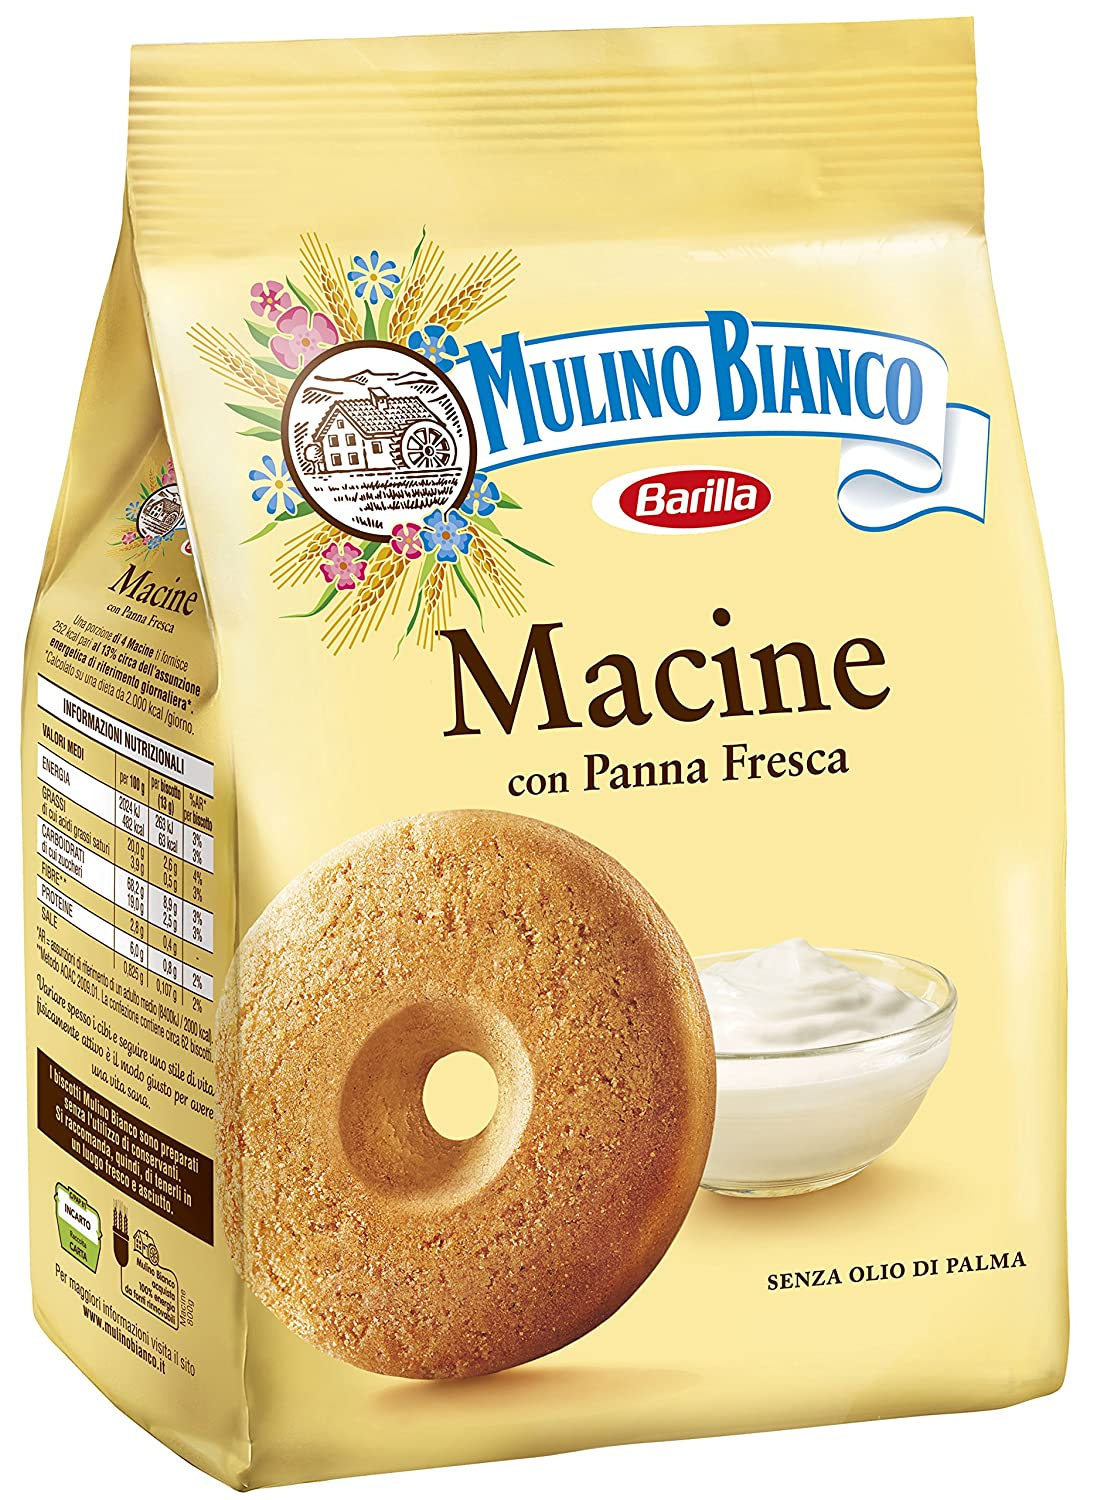 Macine Cream Cookie